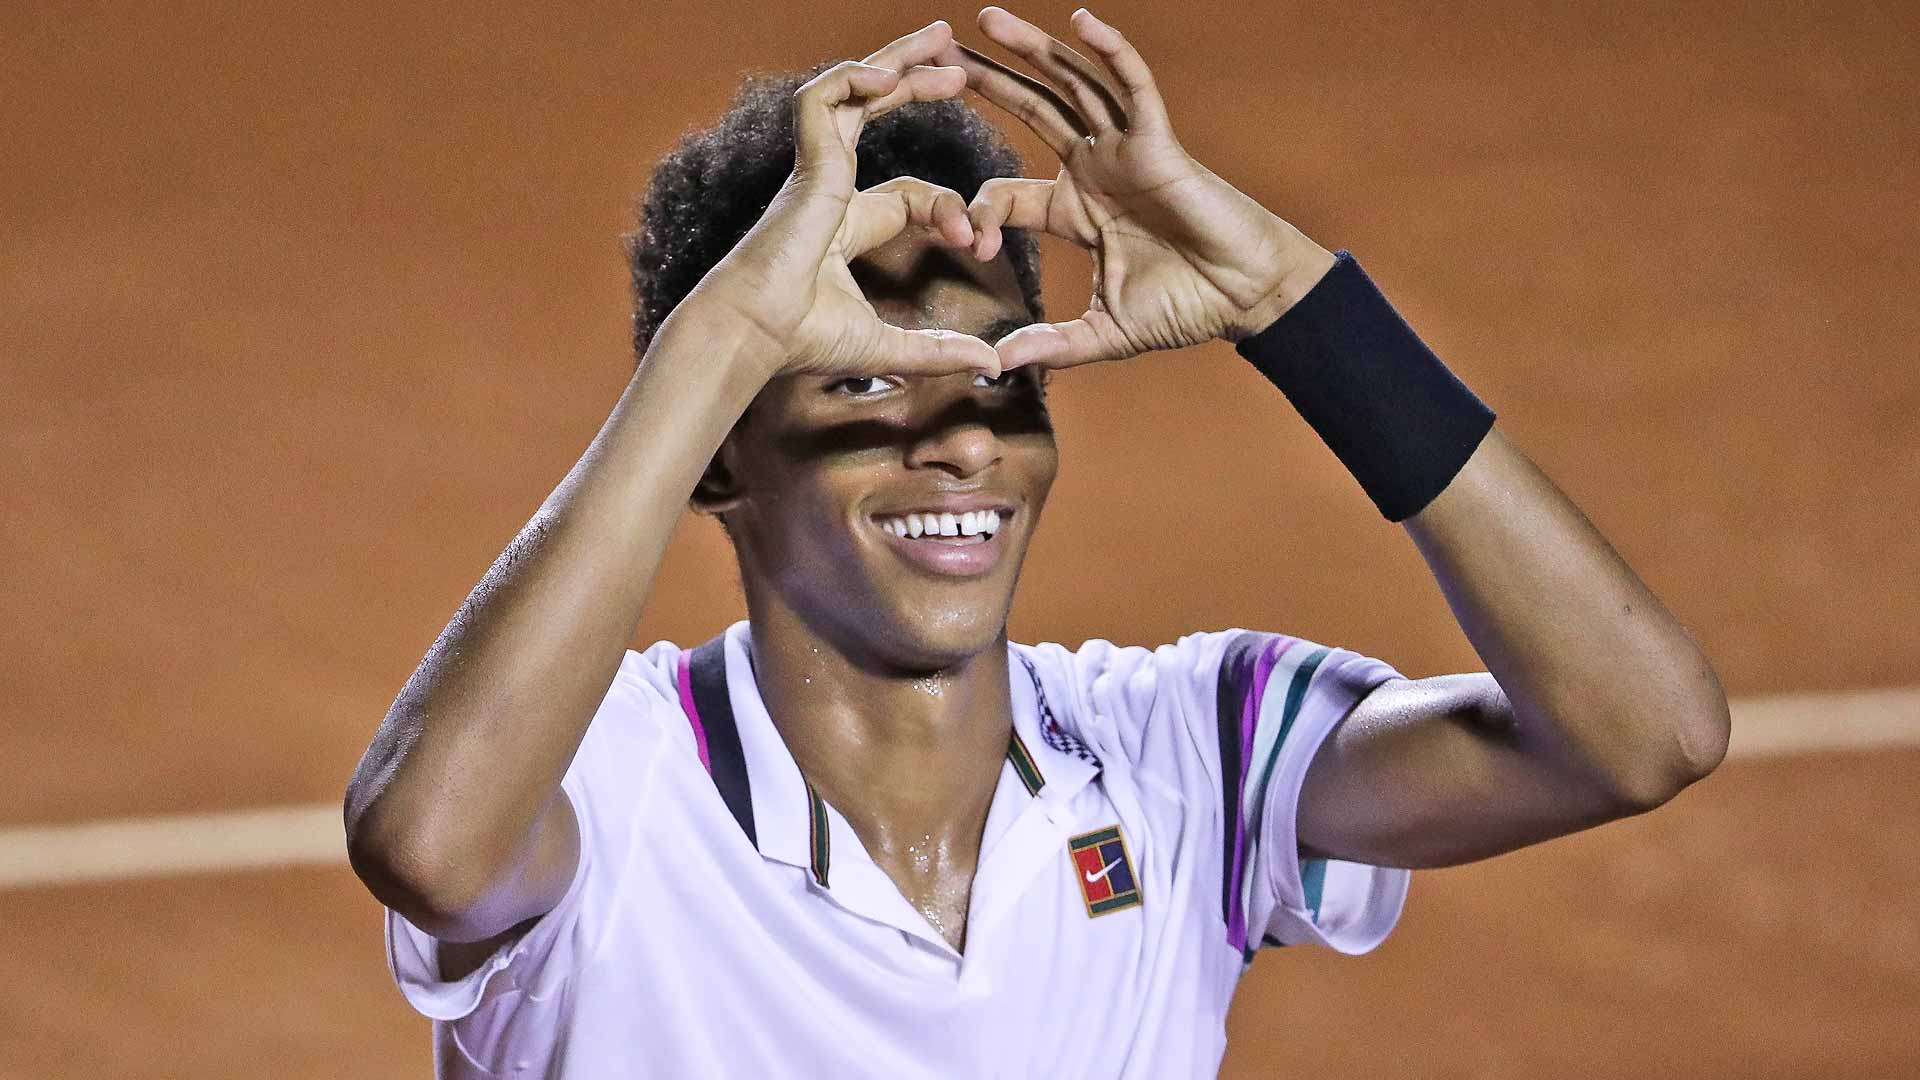 <a href='/en/players/felix-auger-aliassime/ag37/overview'>Felix Auger-Aliassime</a> thanks the crowd for its support during his semi-final in Rio de Janeiro.